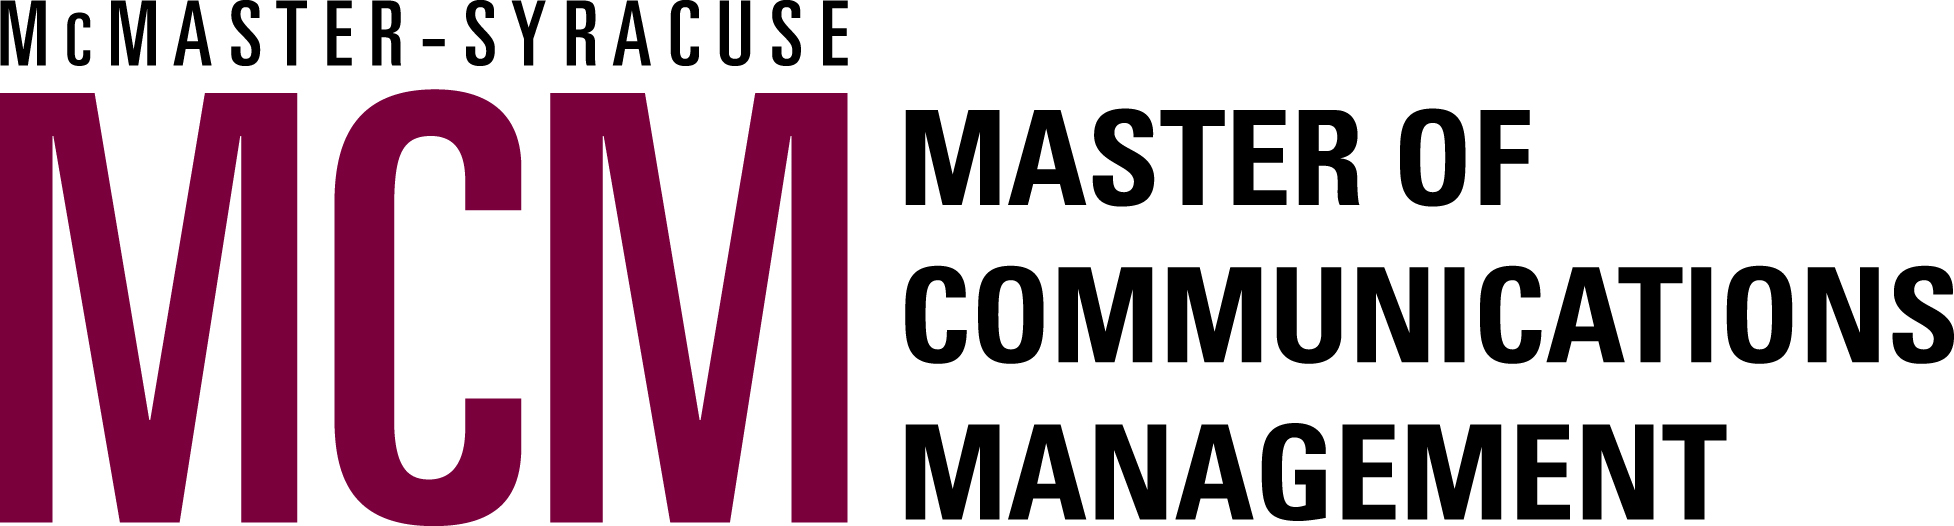 McMaster Syracuse Master of Communications Management (MCM)